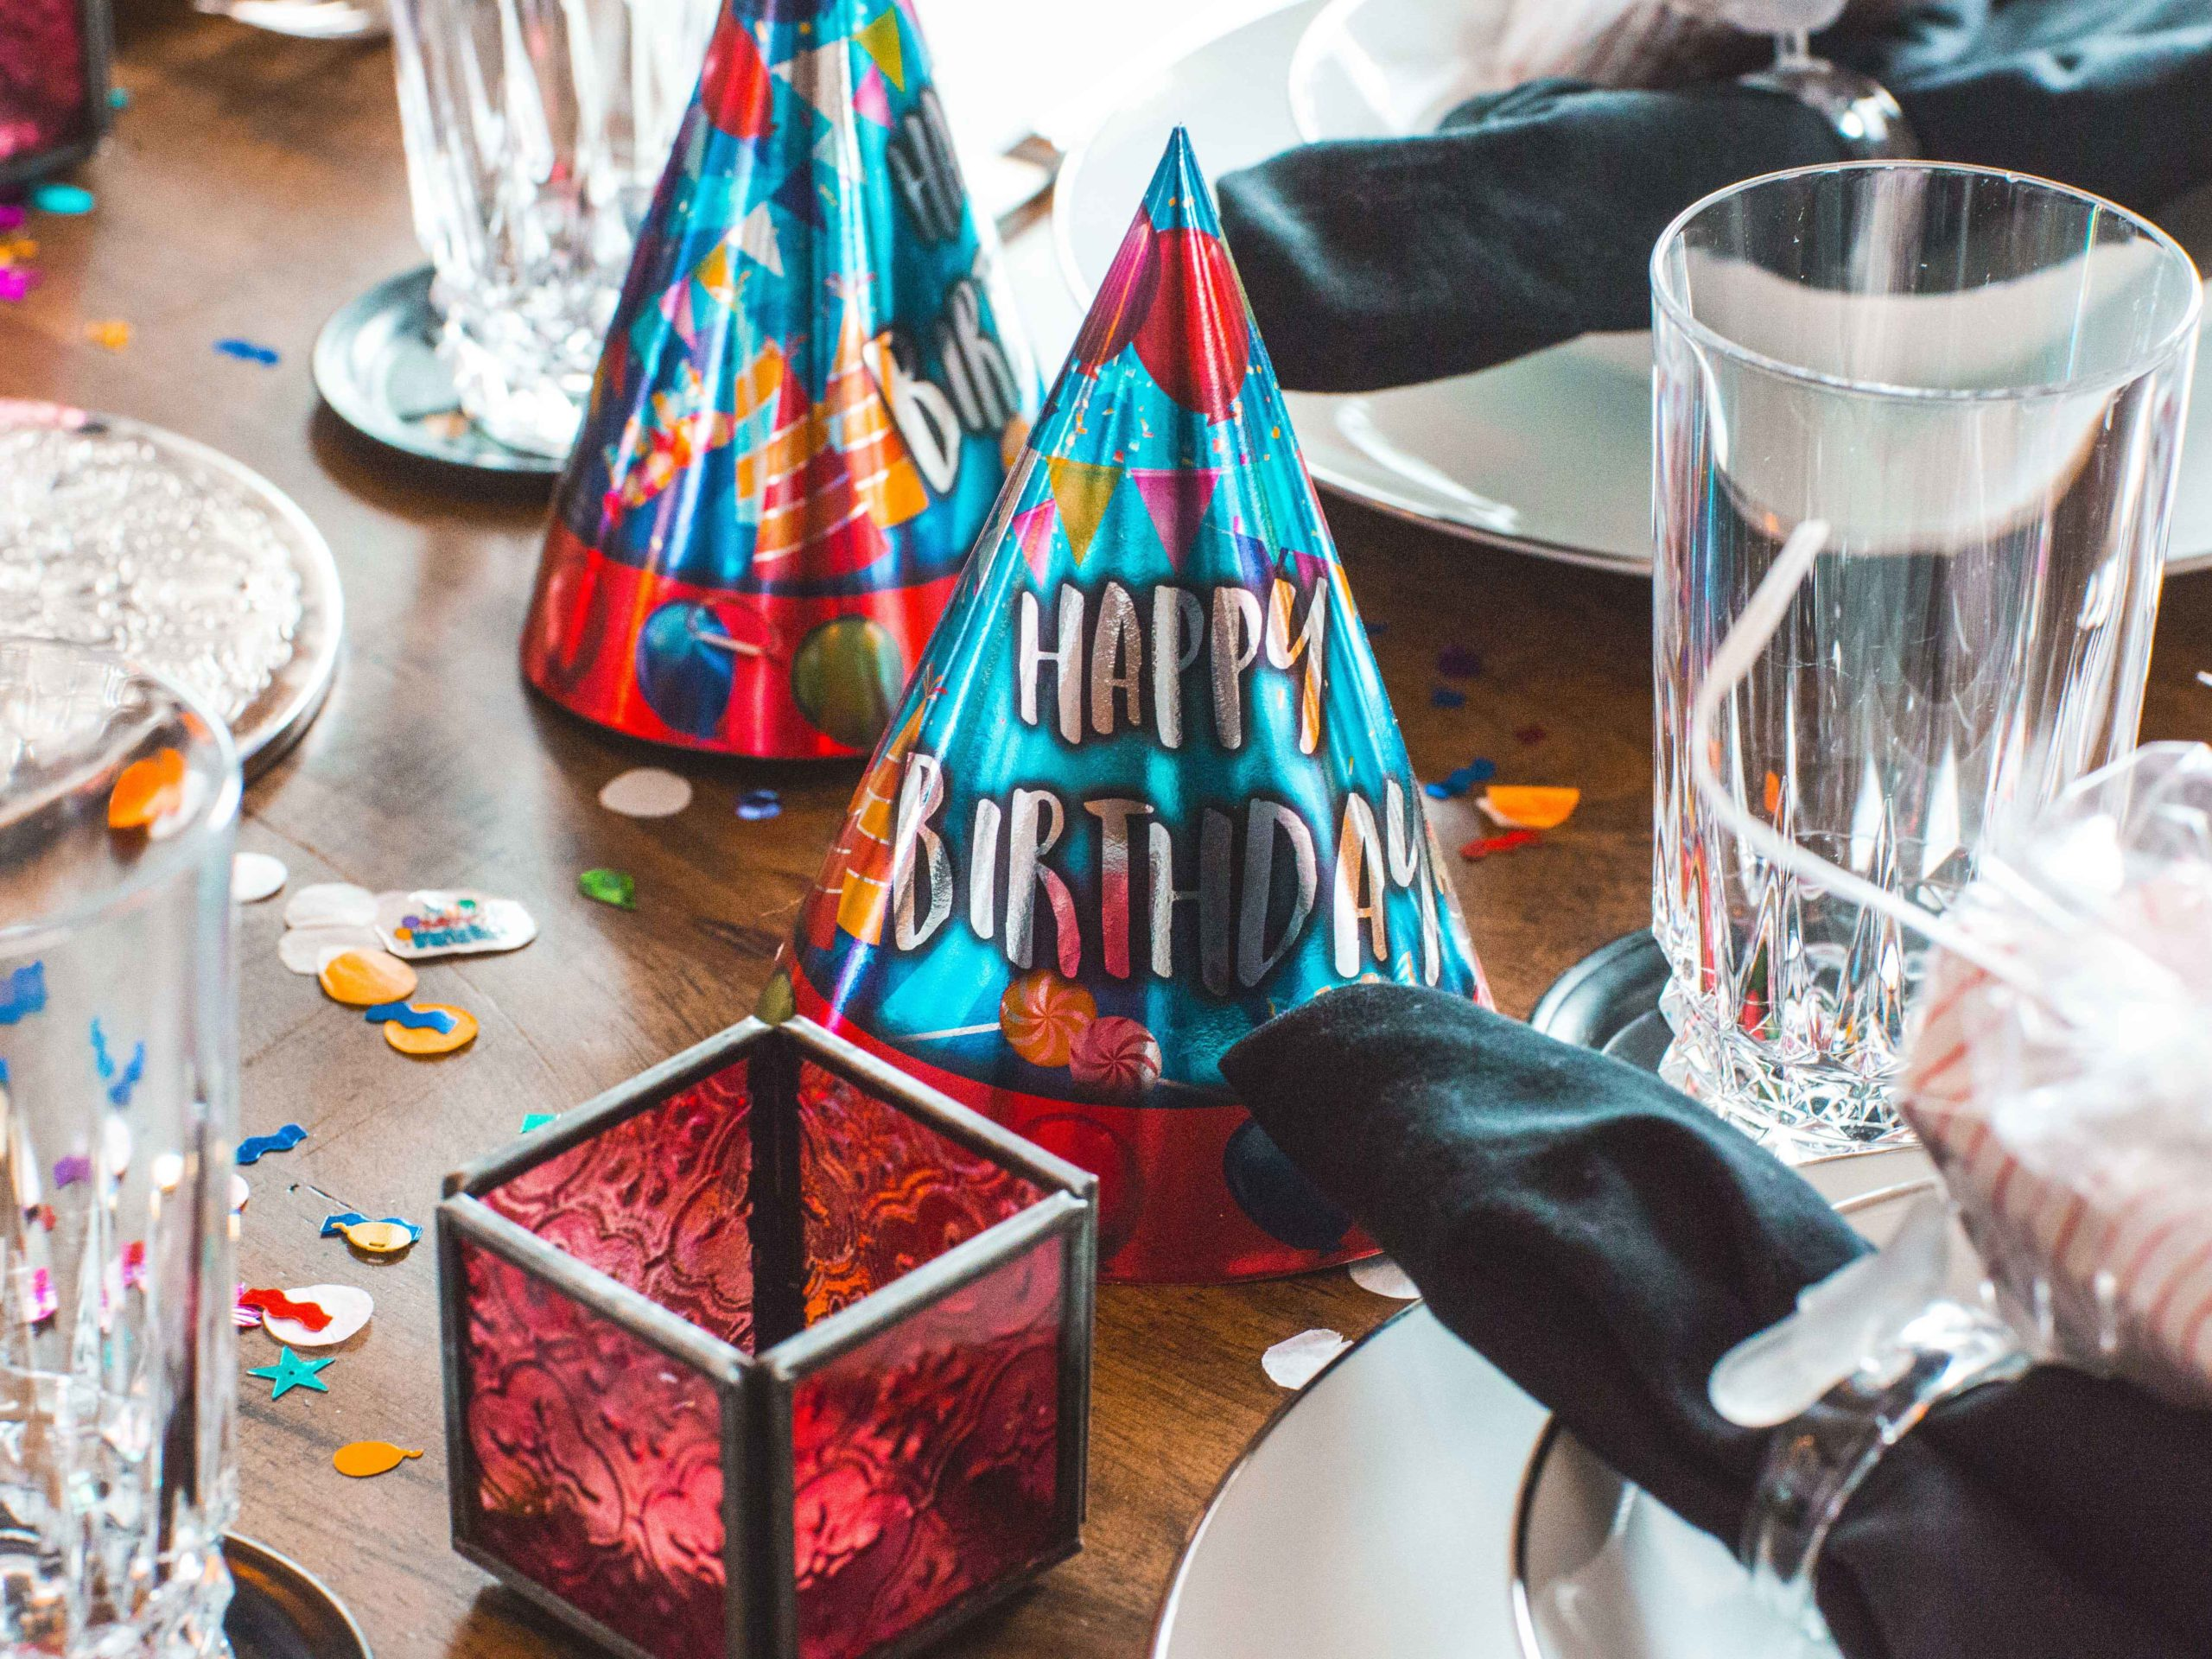 Table with birthday hats